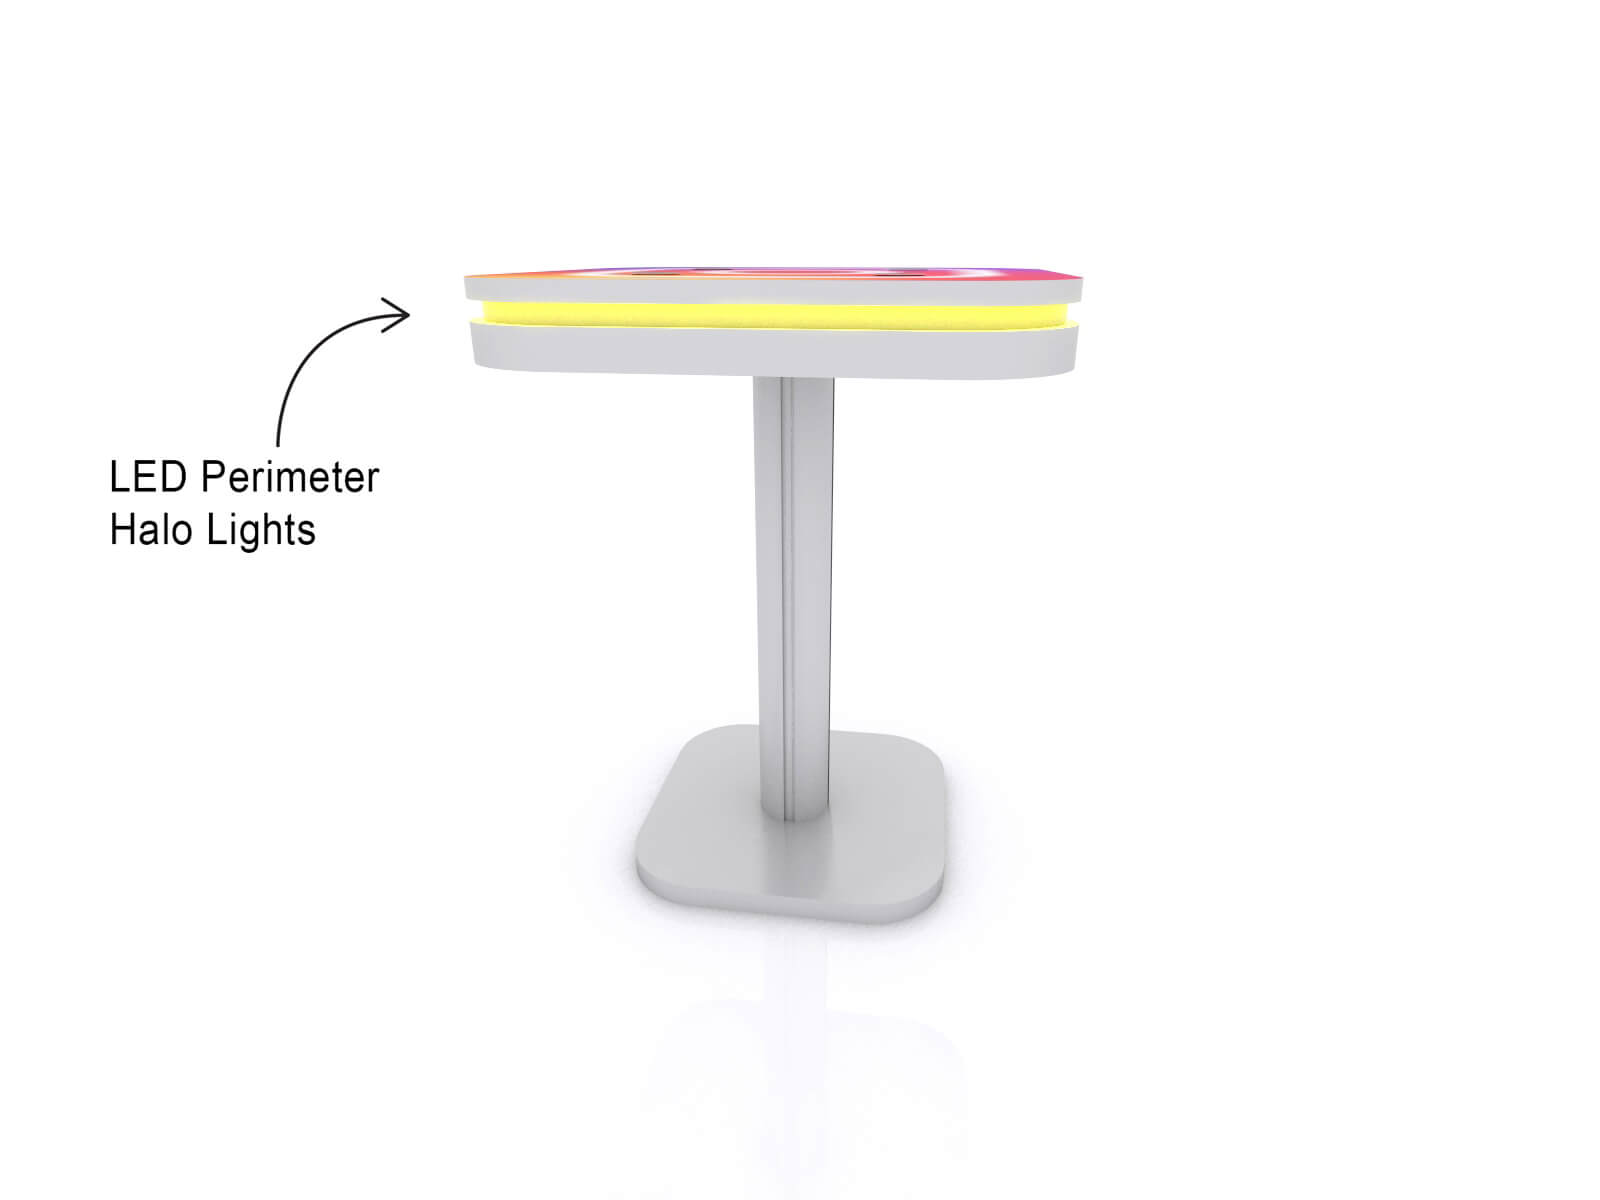 MOD-1458 Trade Show Wireless Charging Station - image 4